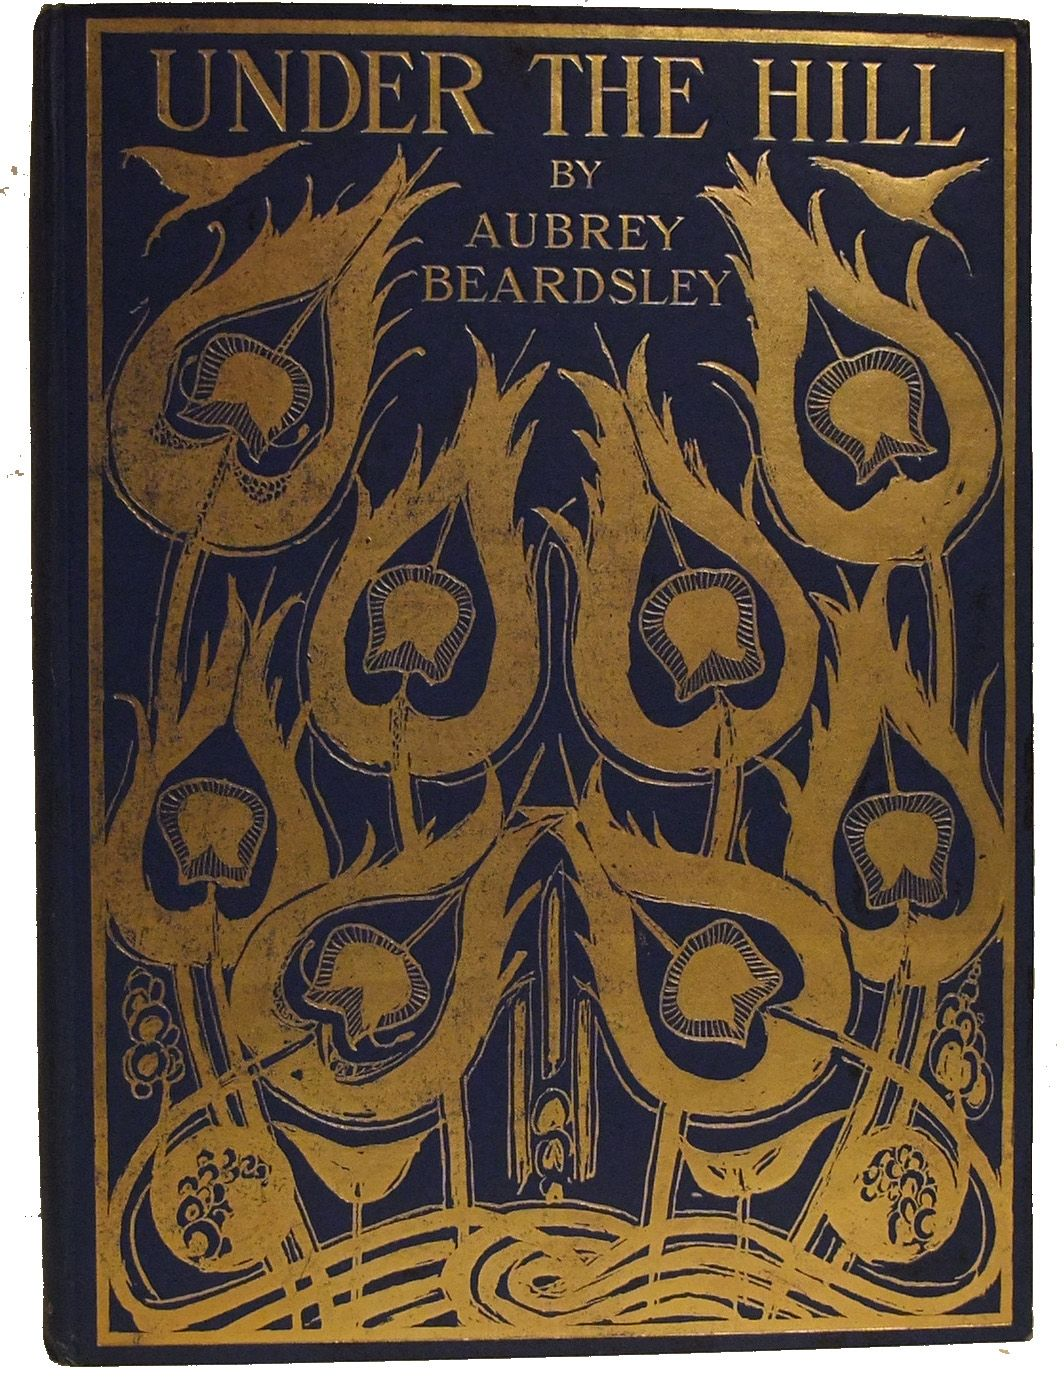 Love Aubrey Book Cover ~ Under the hill by aubrey beardsley for love of books